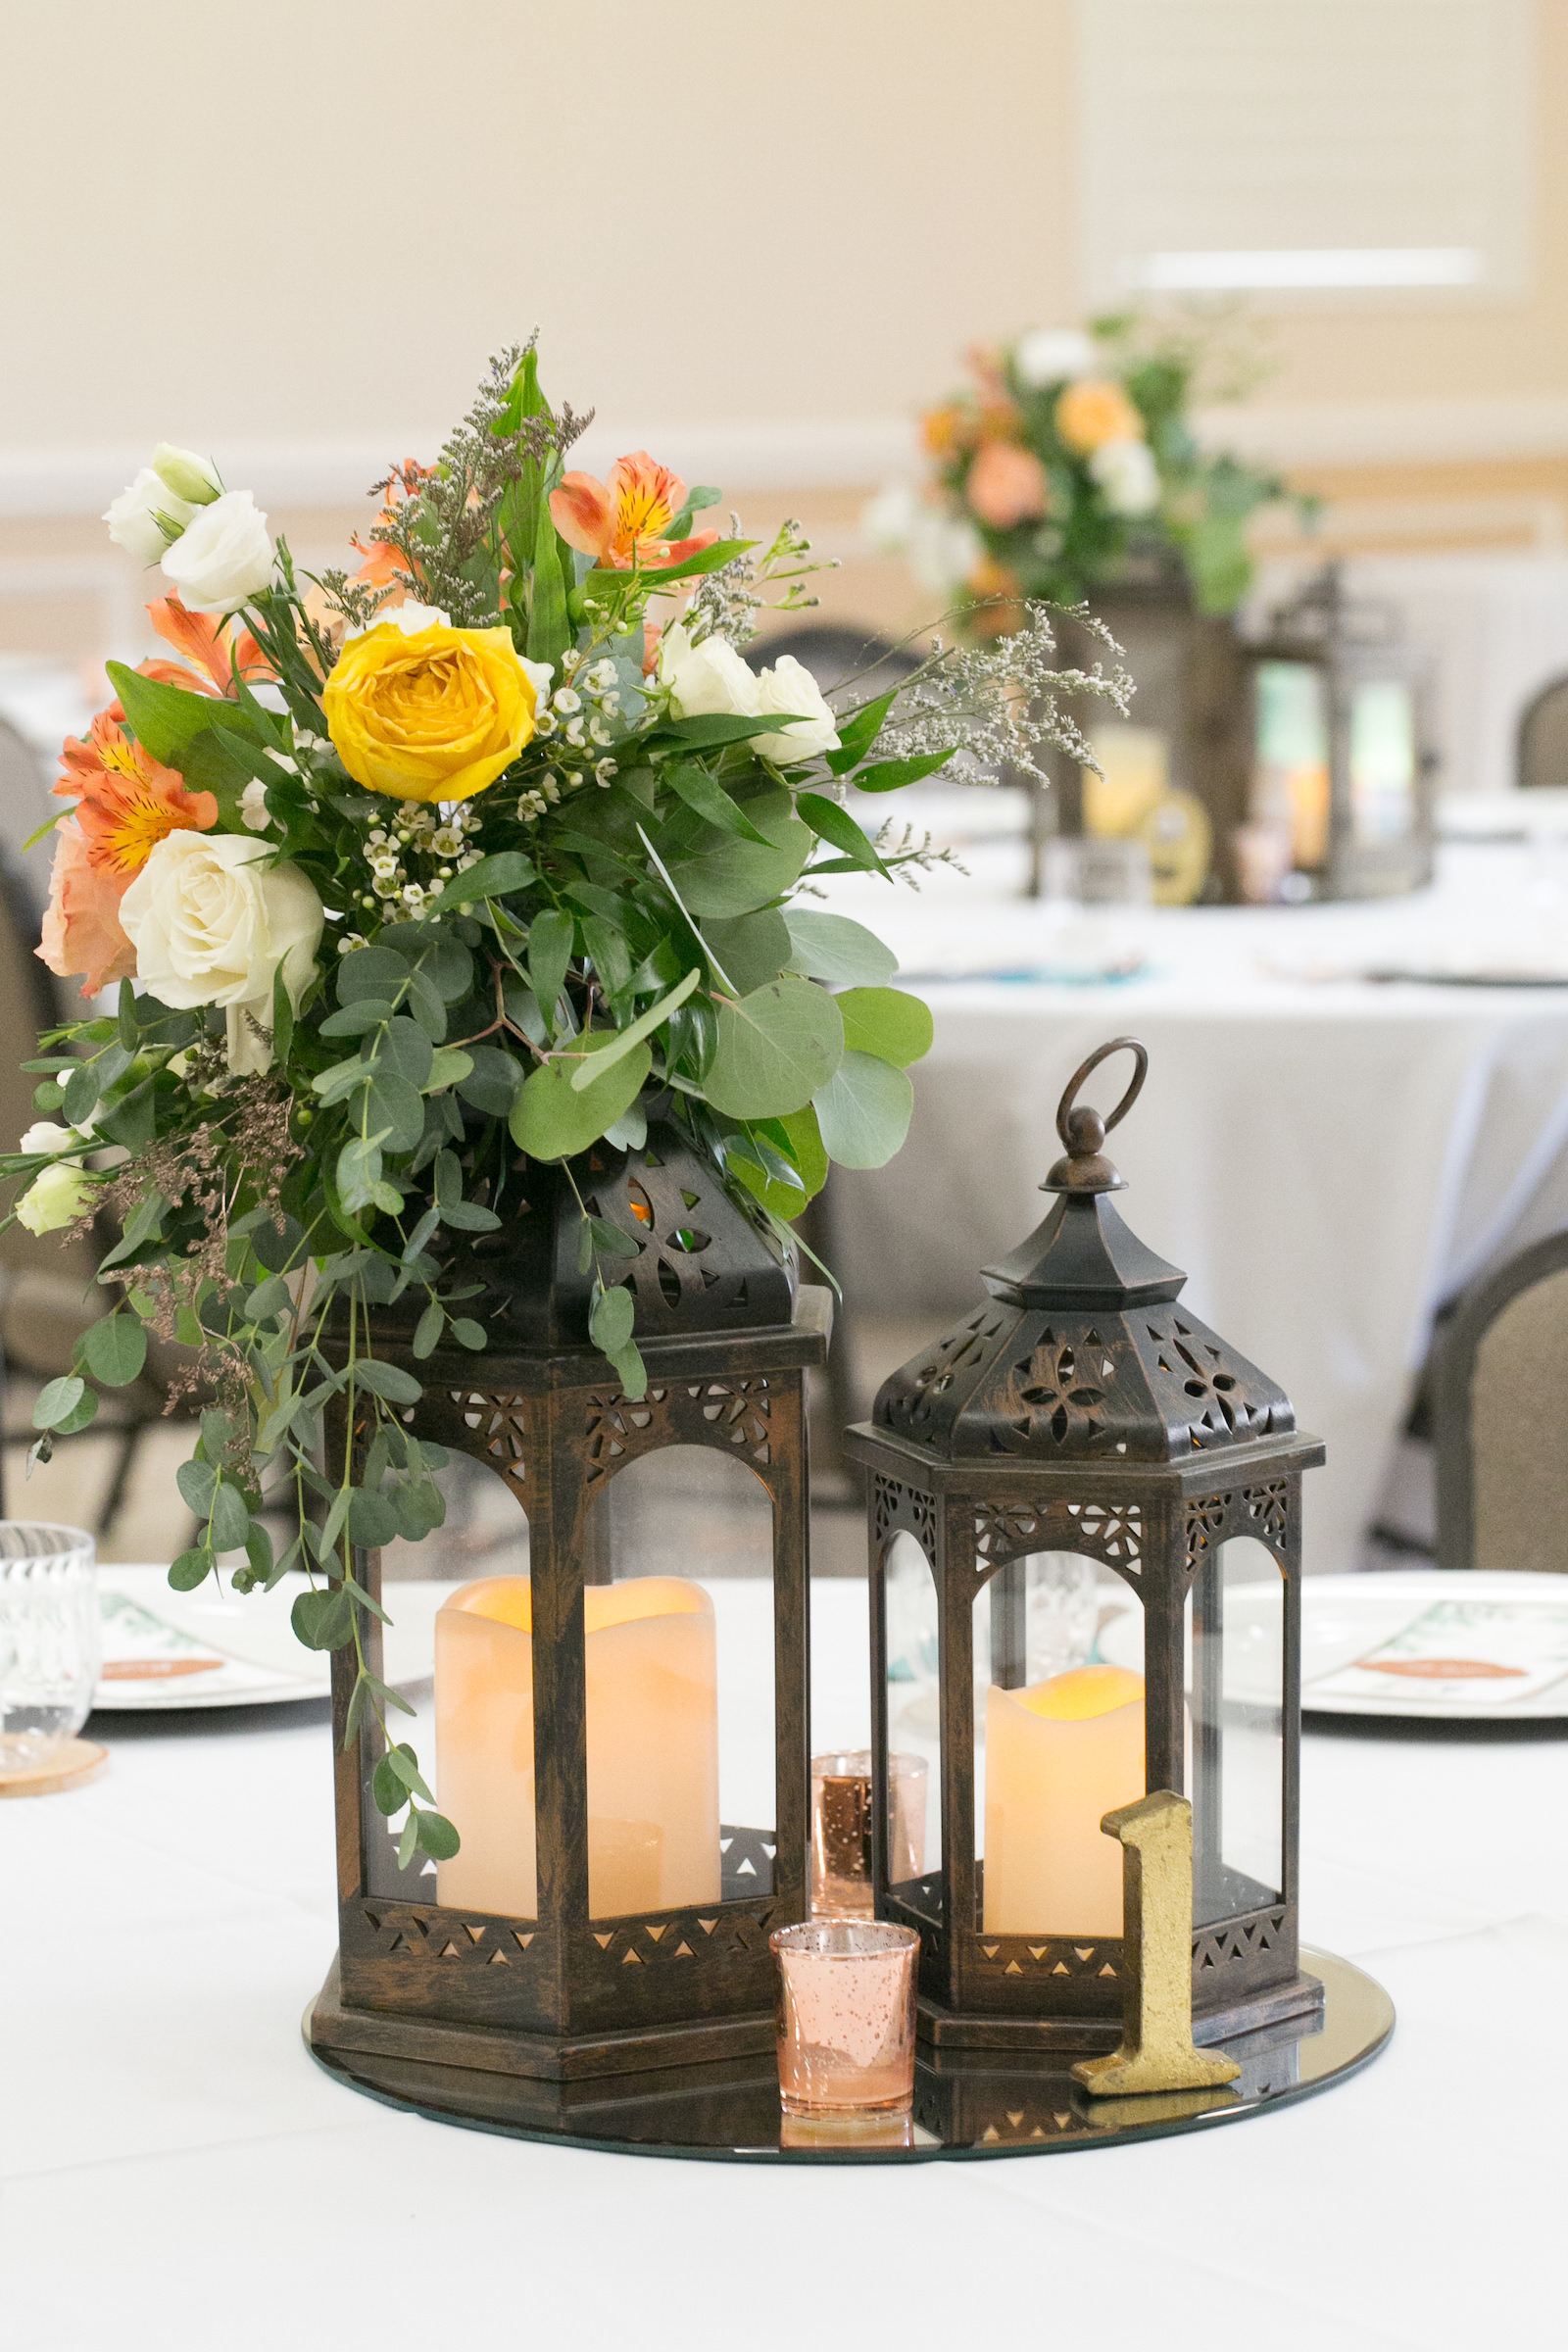 Rustic Wedding Reception Decor, Circular Mirror Tray with Black Lanterns and Candles, Yellow, Orange, and White Roses with Greenery Florals Centerpiece | Wedding Photographer Carrie Wildes Photography